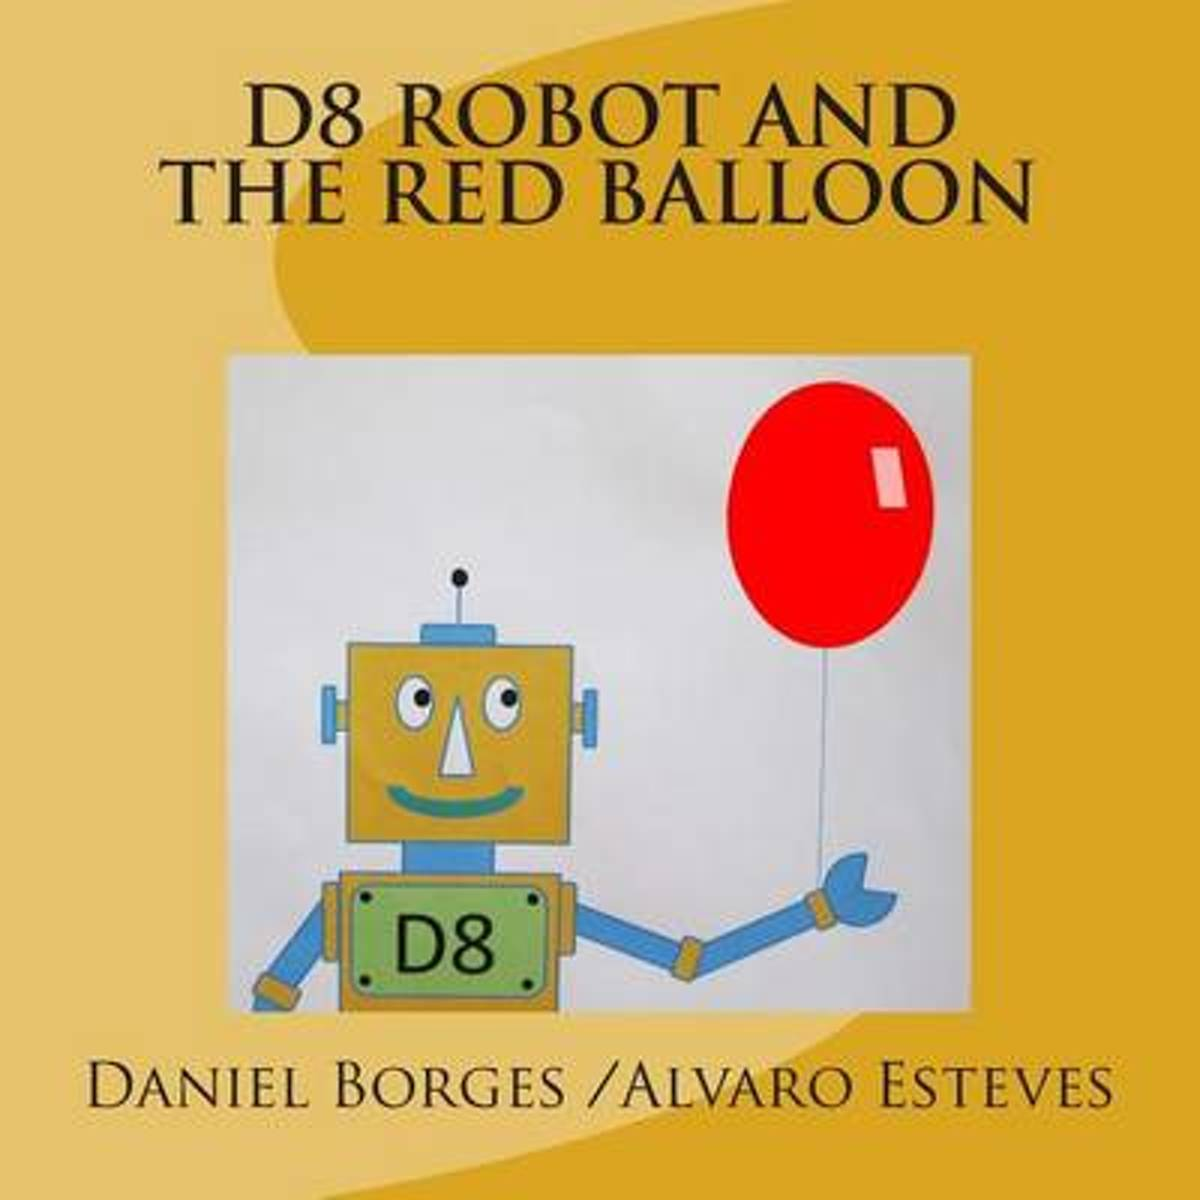 D8 Robot and the Red Balloon